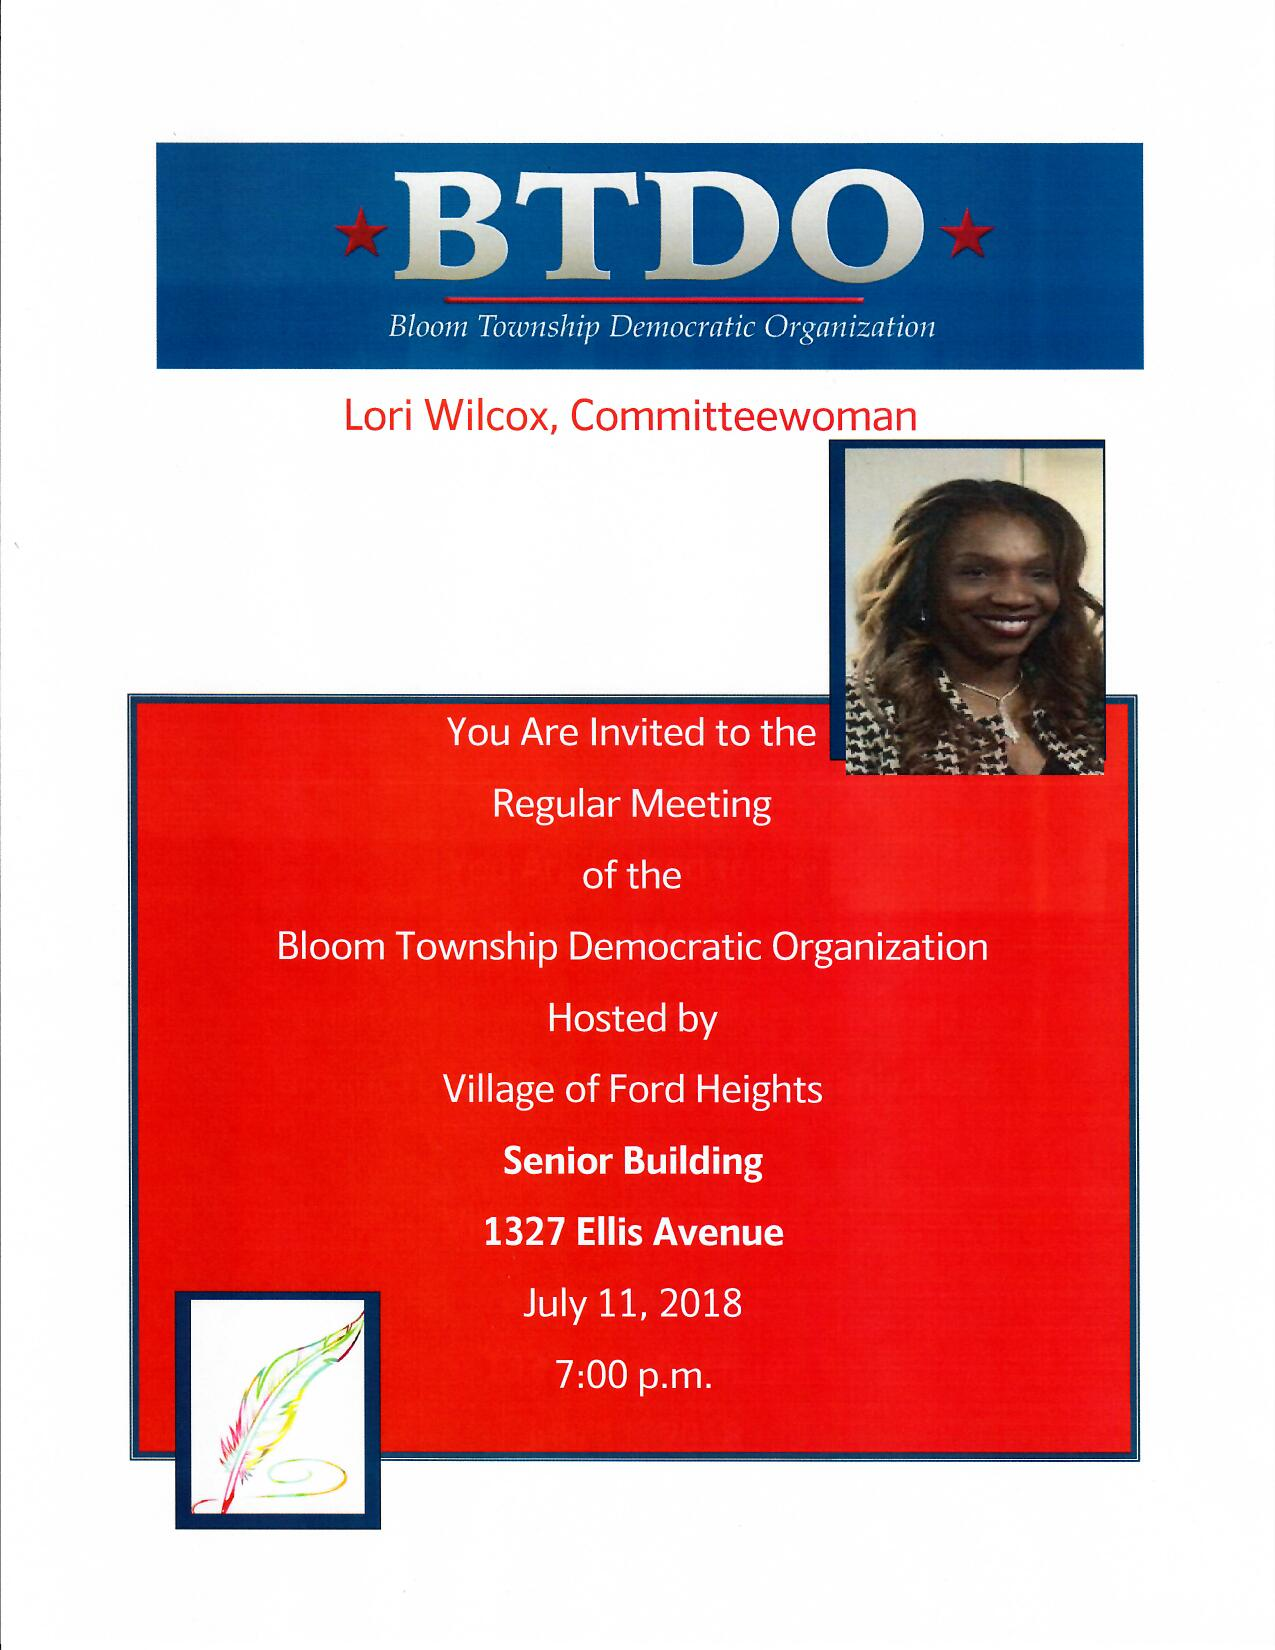 Come enjoy refreshments while chiming in on the discussion with Committewoman Mrs. Lori Wilcox as she shares her vision.